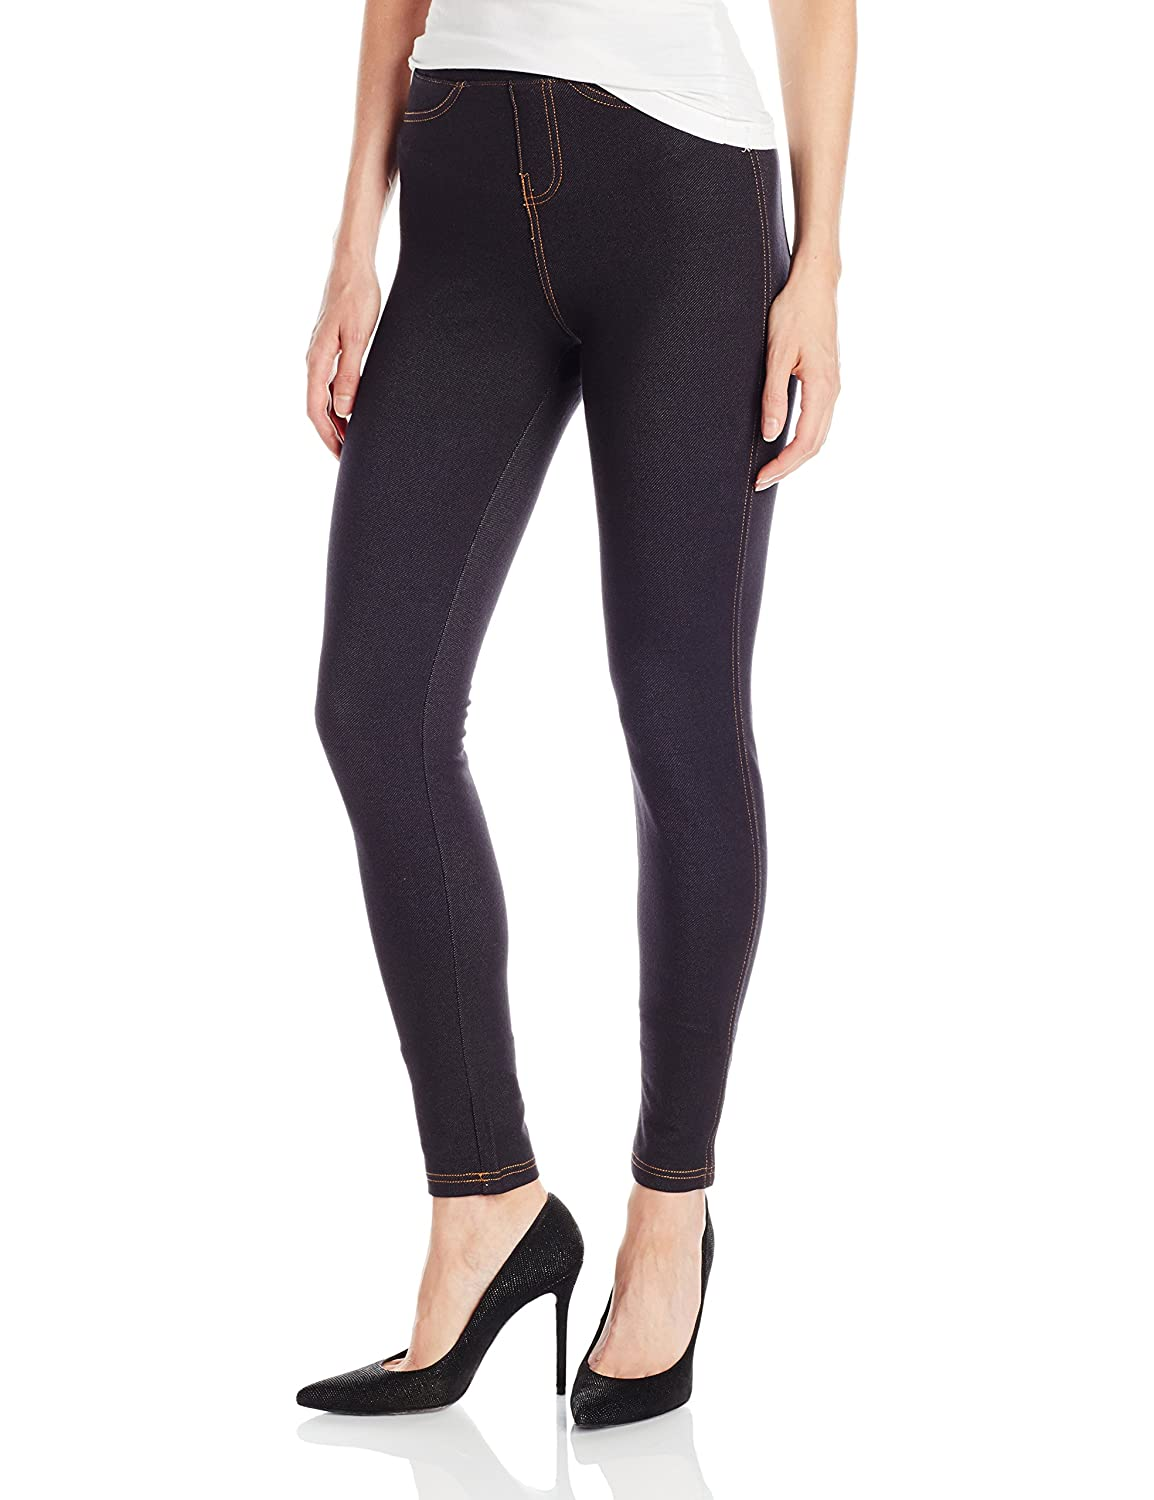 f7d2a62d453a0 No nonsense Women's Denim Leggings With Pockets at Amazon Women's Clothing  store: